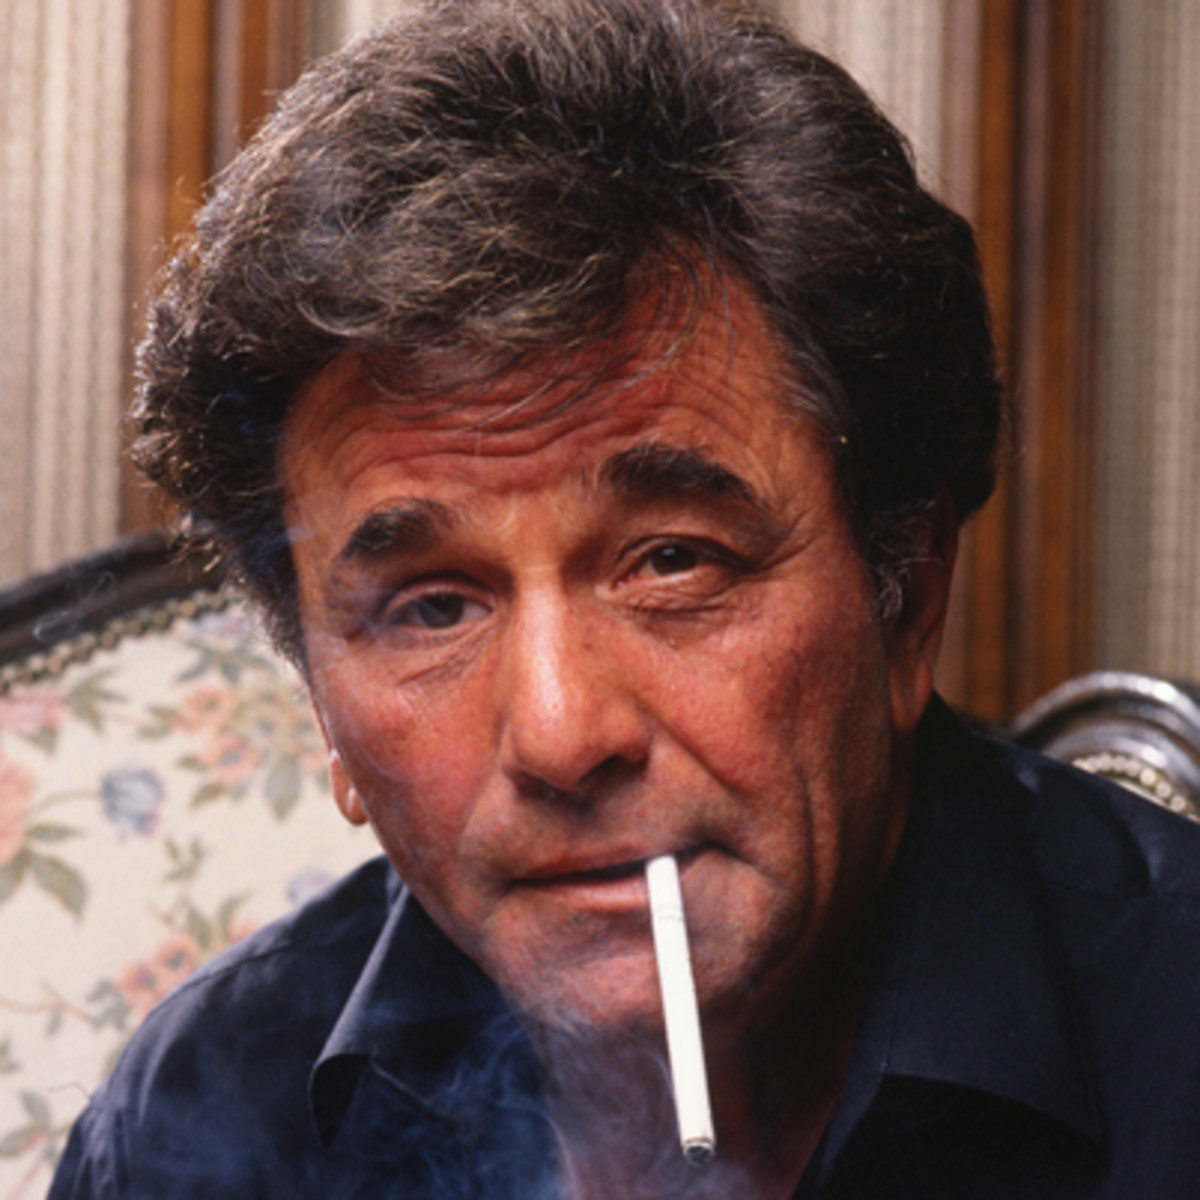 peter falk kimdirpeter falk 2008, peter falk colombo, peter falk book, peter falk films, peter falk wiki, peter falk paintings, peter falk funeral, peter falk patrick mcgoohan, peter falk tv shows, peter falk drawings, peter falk alzheimer's, peter falk house, peter falk pronunciation, peter falk 2009, peter falk facebook, peter falk kimdir, peter falk robert vaughn, peter falk en español, peter falk look alike, peter falk poker